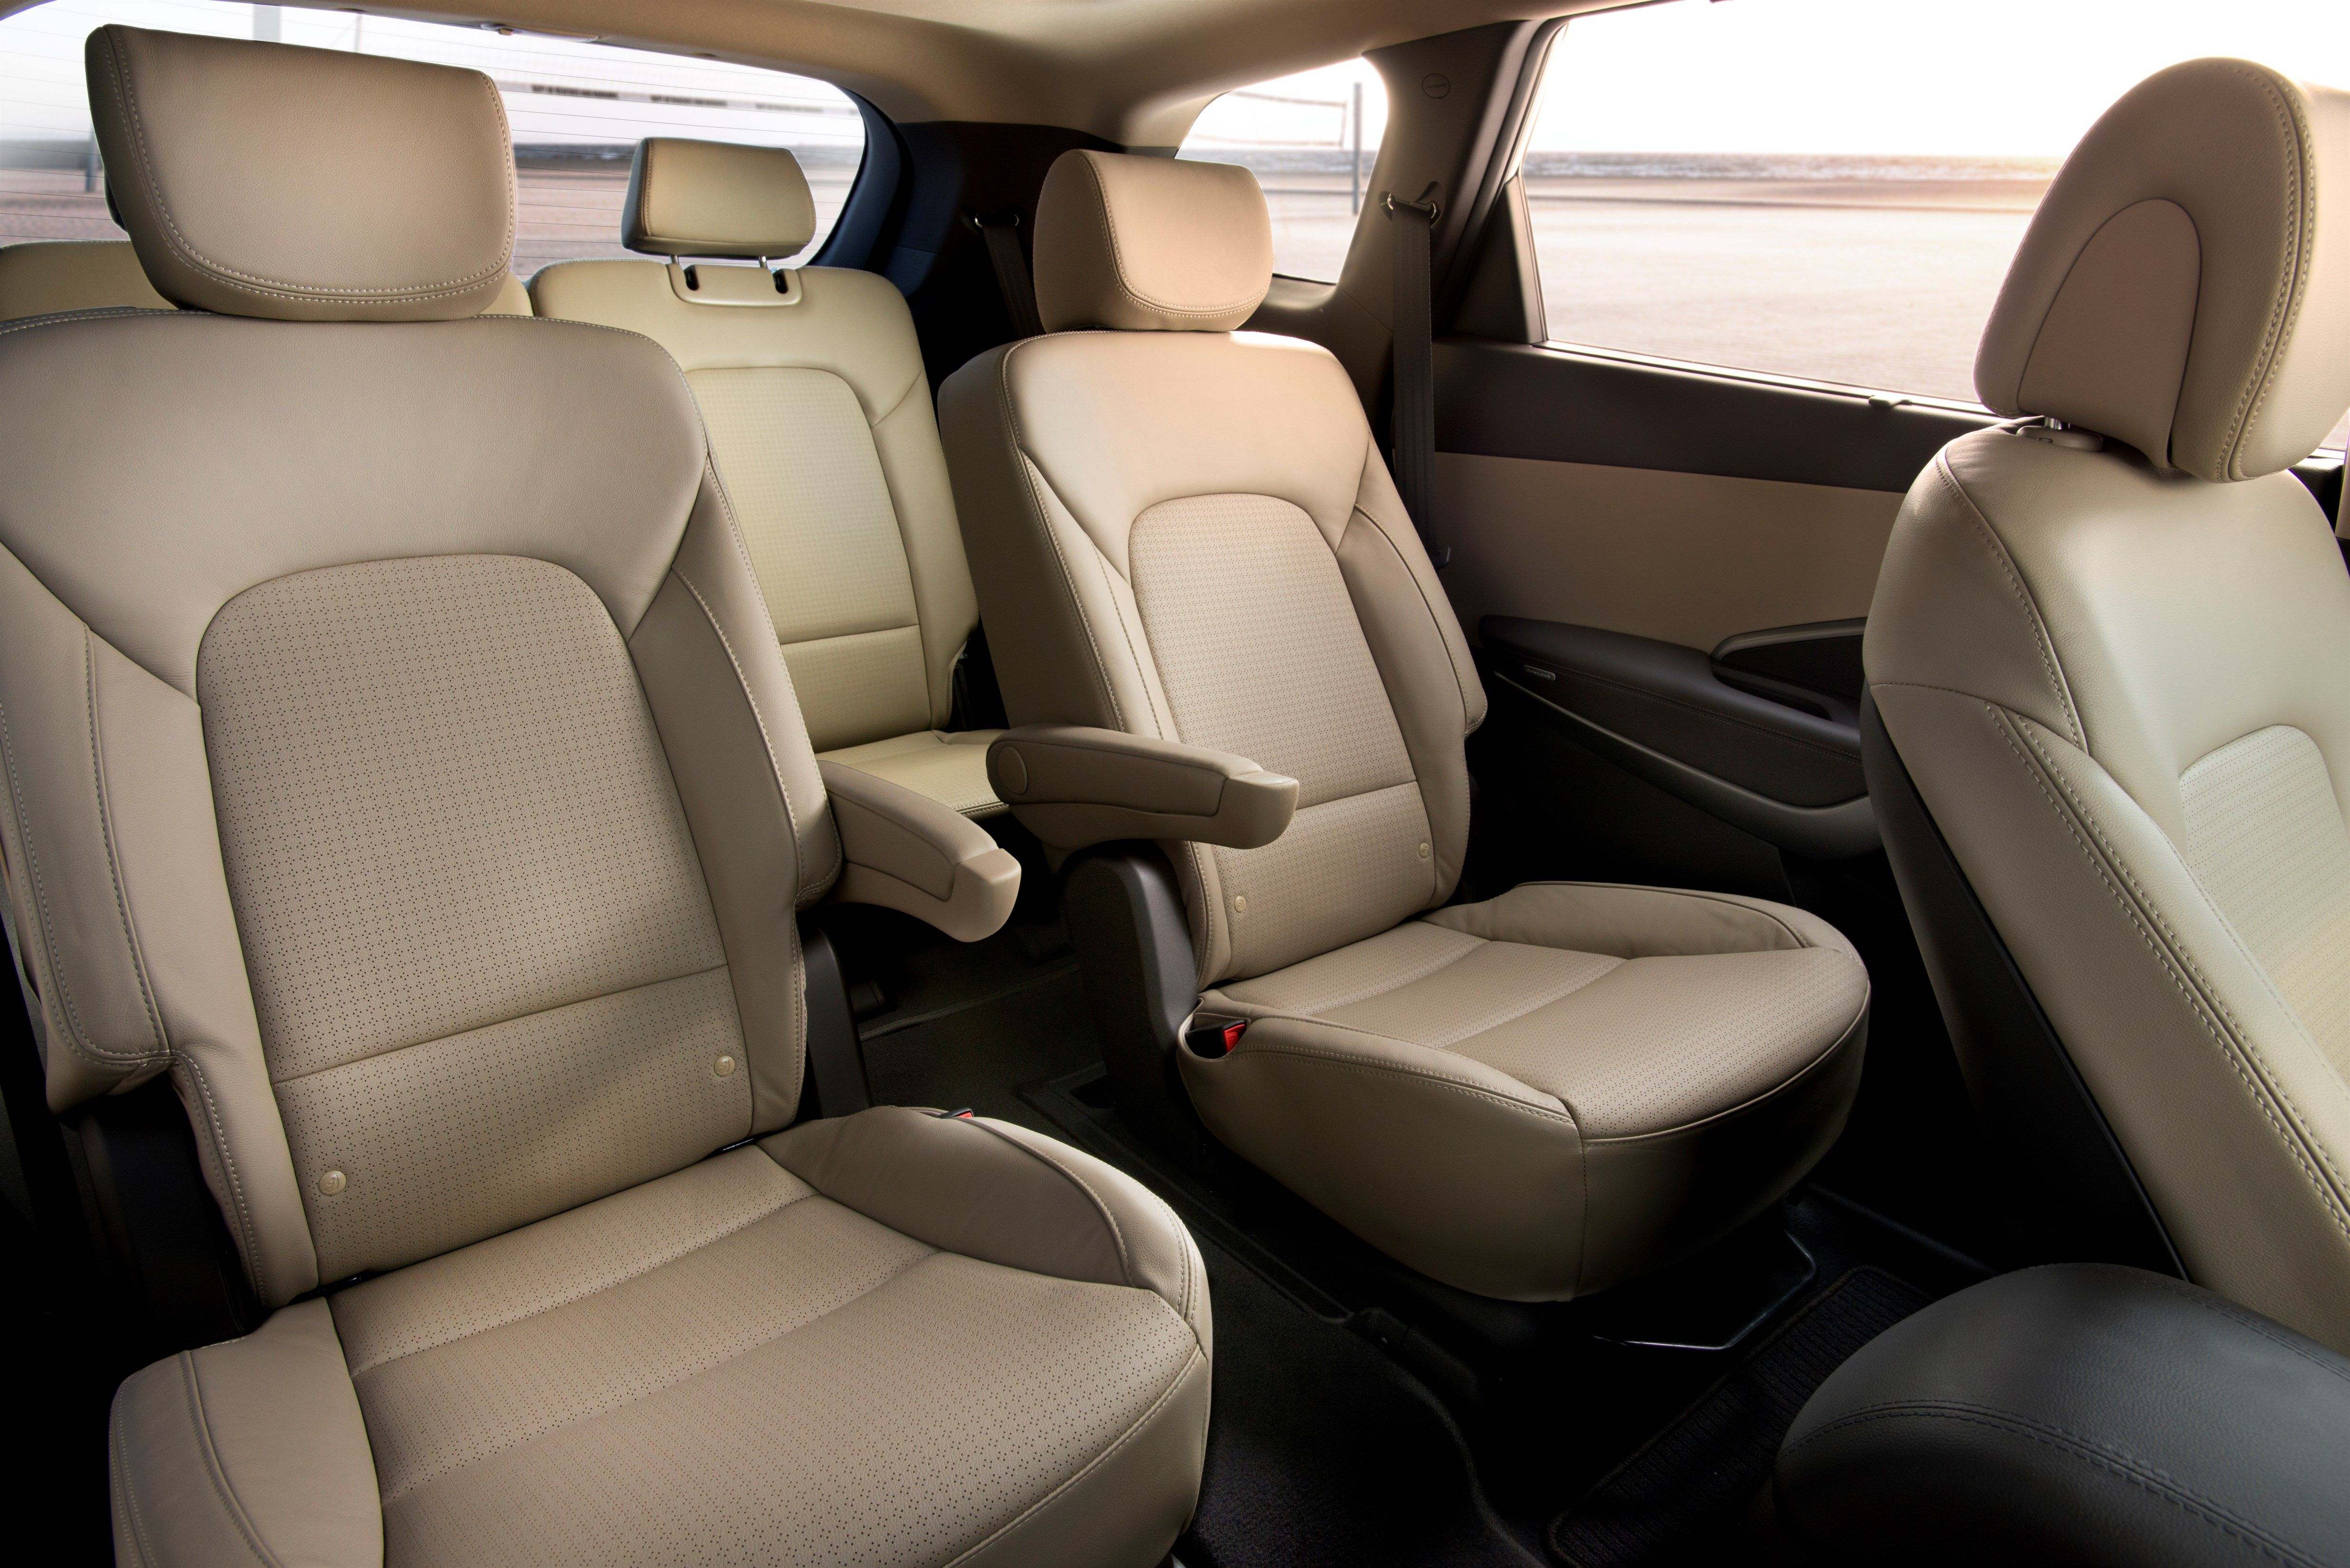 Captain Chairs Suv Victorian Style Uk 2014 Hyundai Santa Fe Limited With 2nd Row Captains